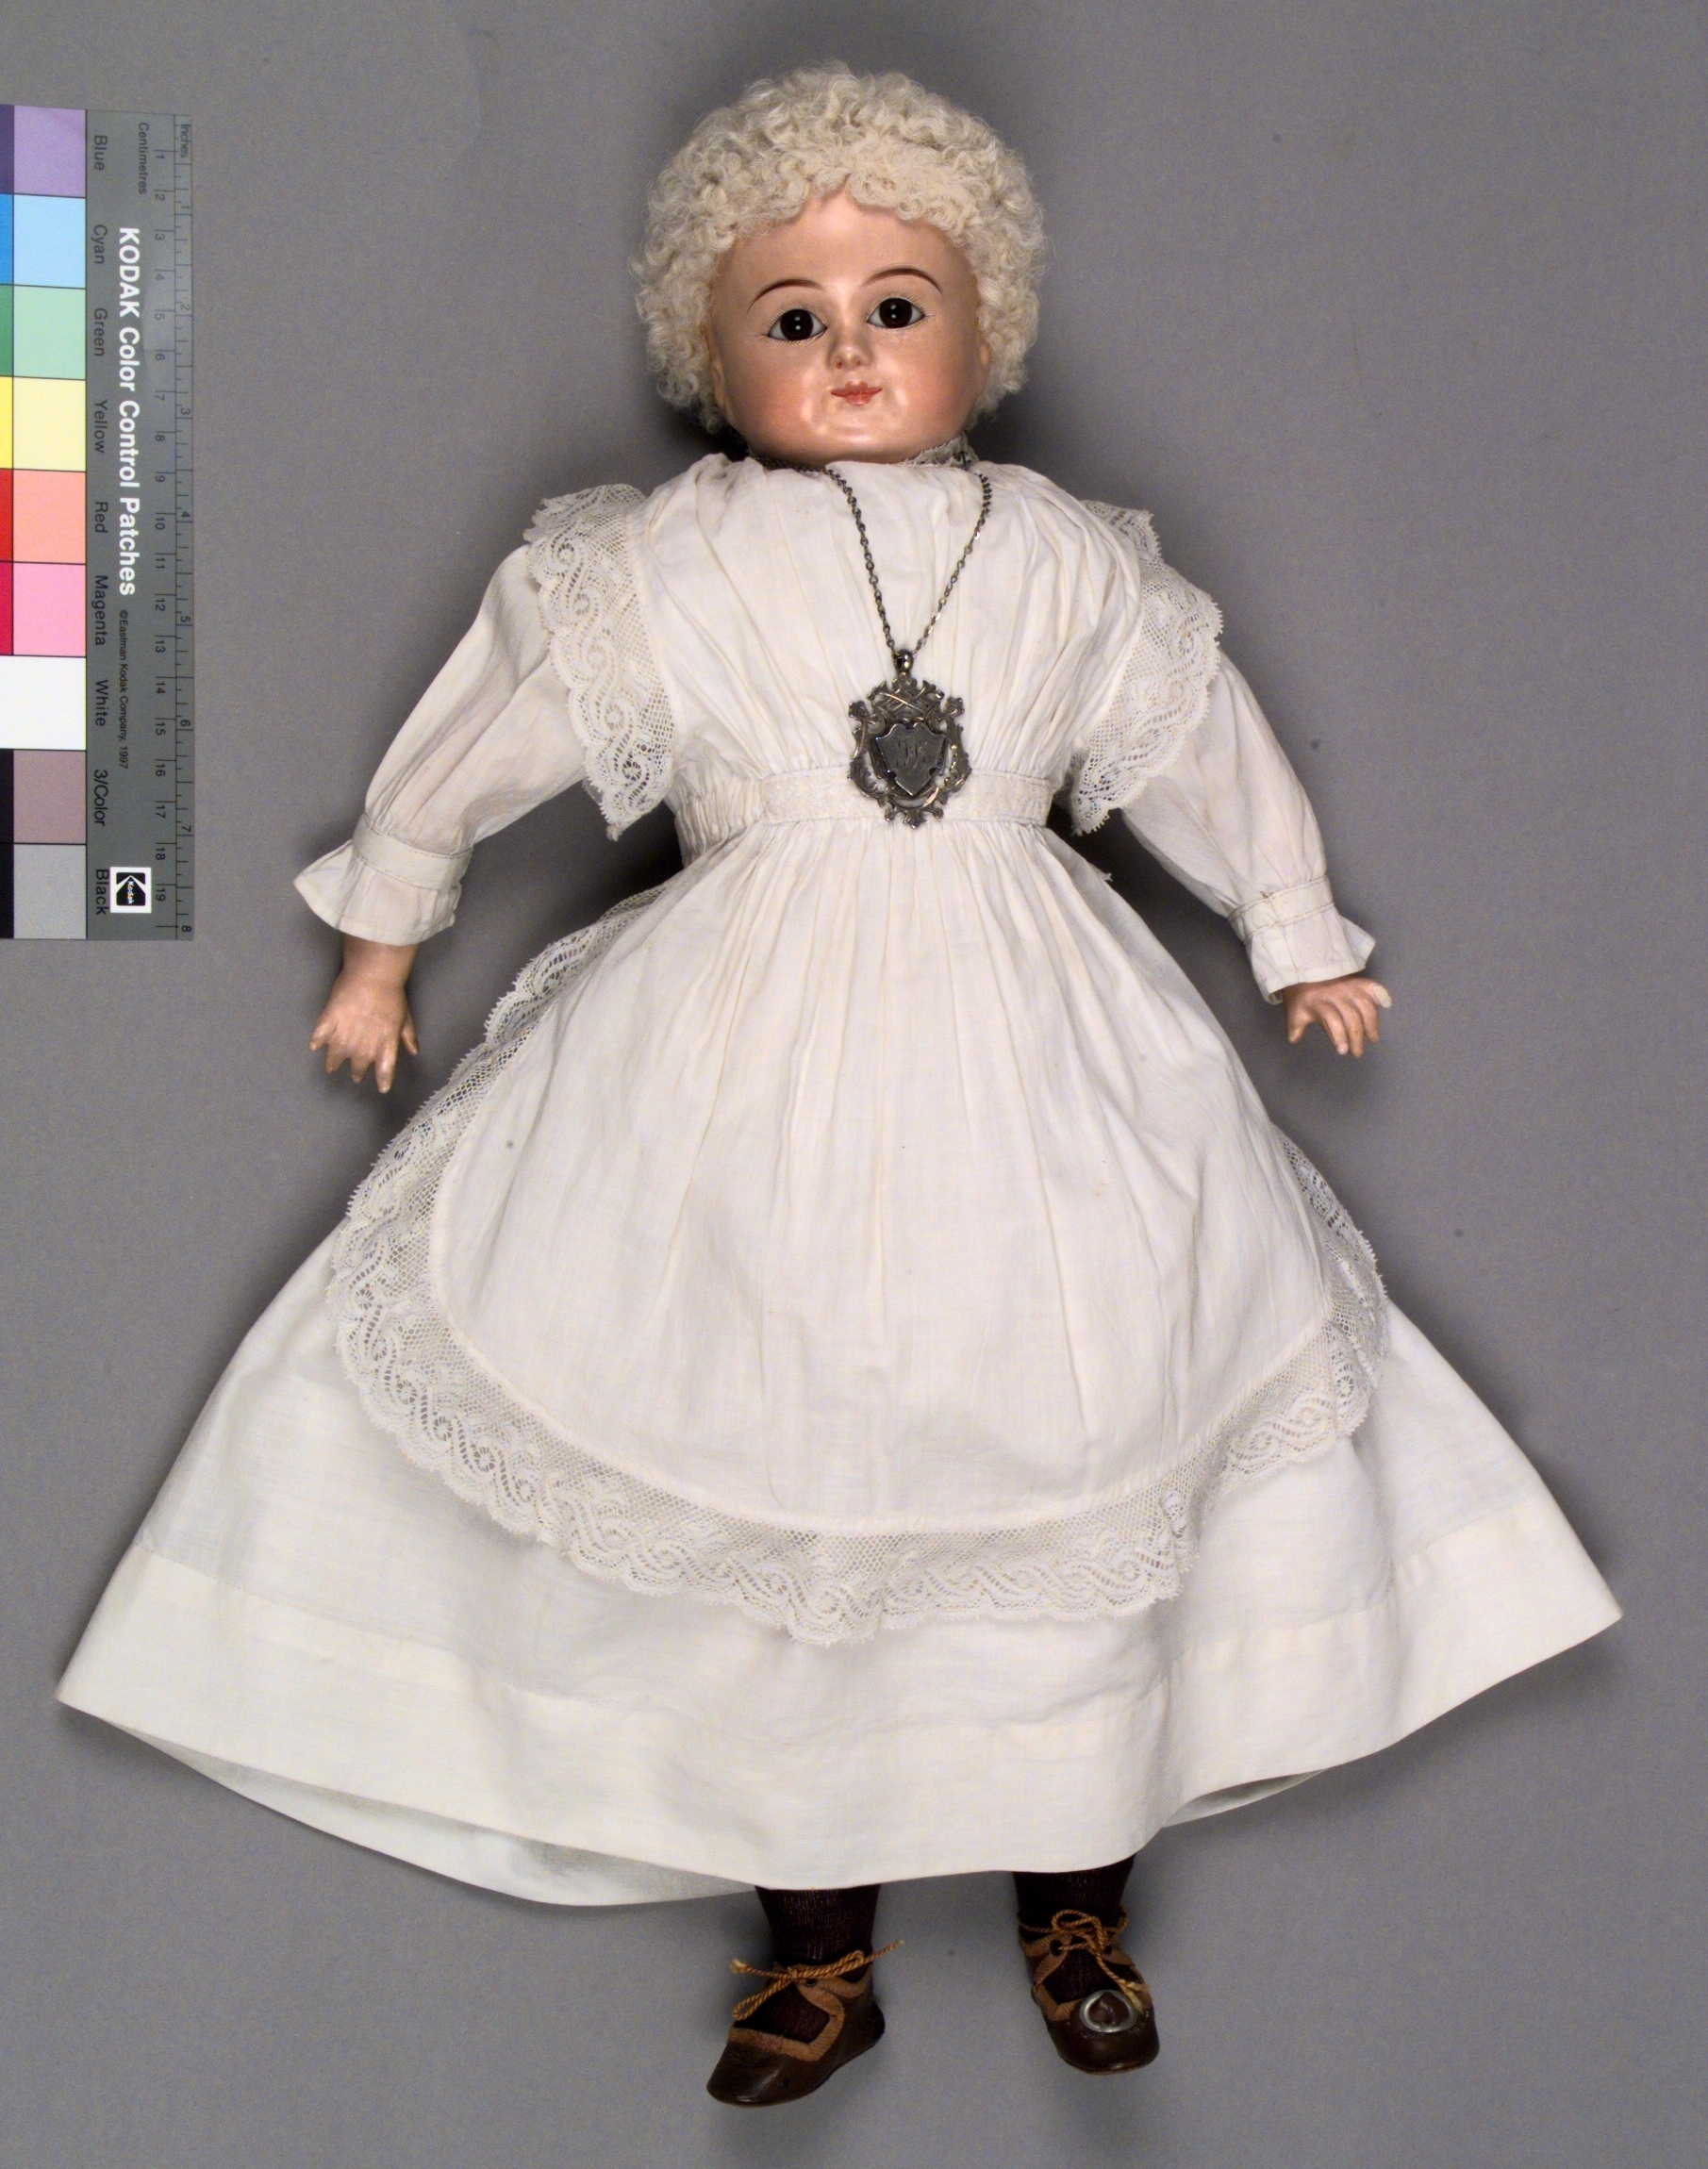 Florence Breaden's doll wearing a long white lace trimmed dress sewn by her as an 8-year-old